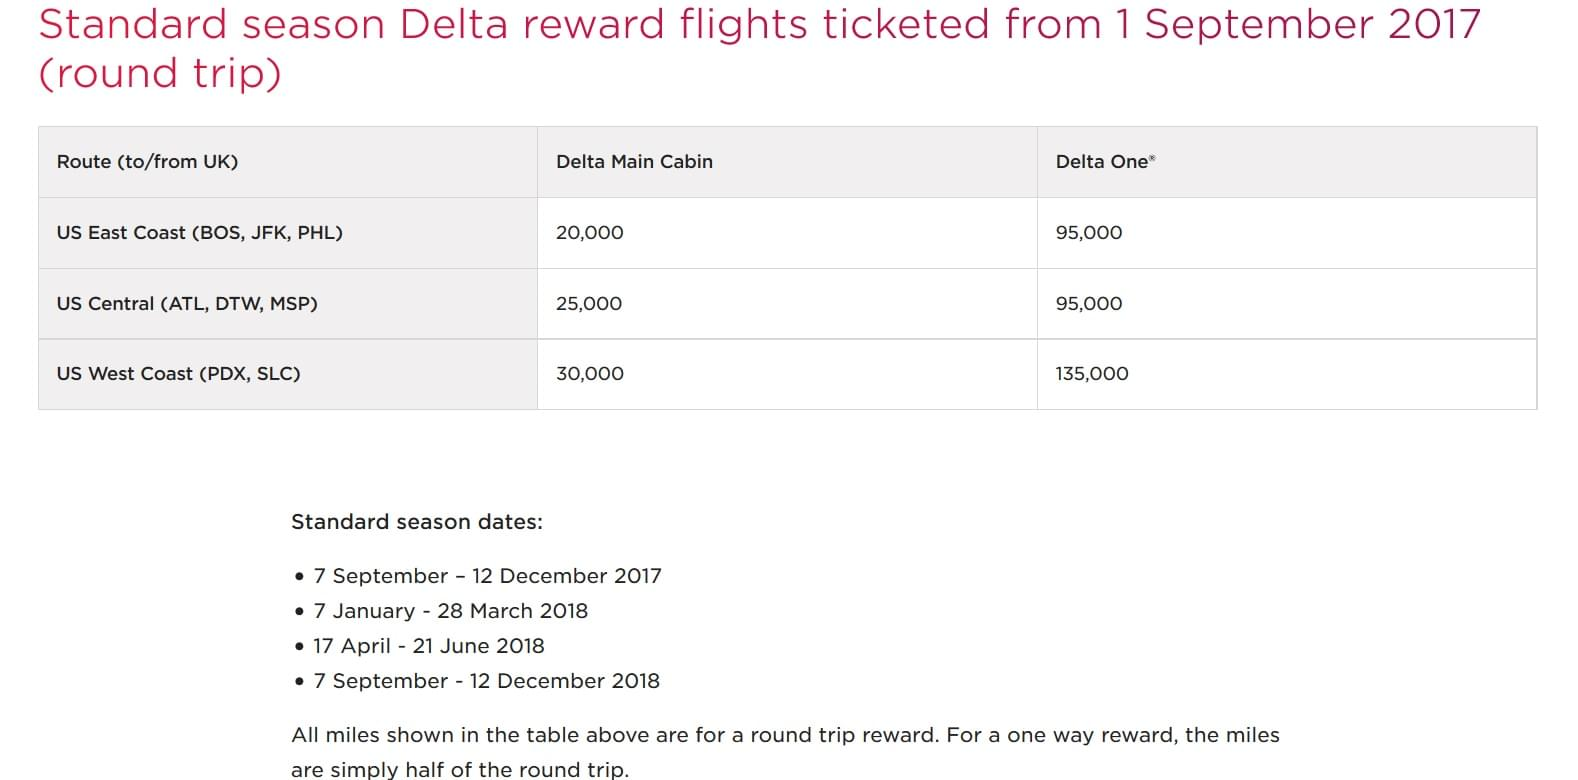 Virgin Atlantic is improving some of the redemption rates for Delta flights